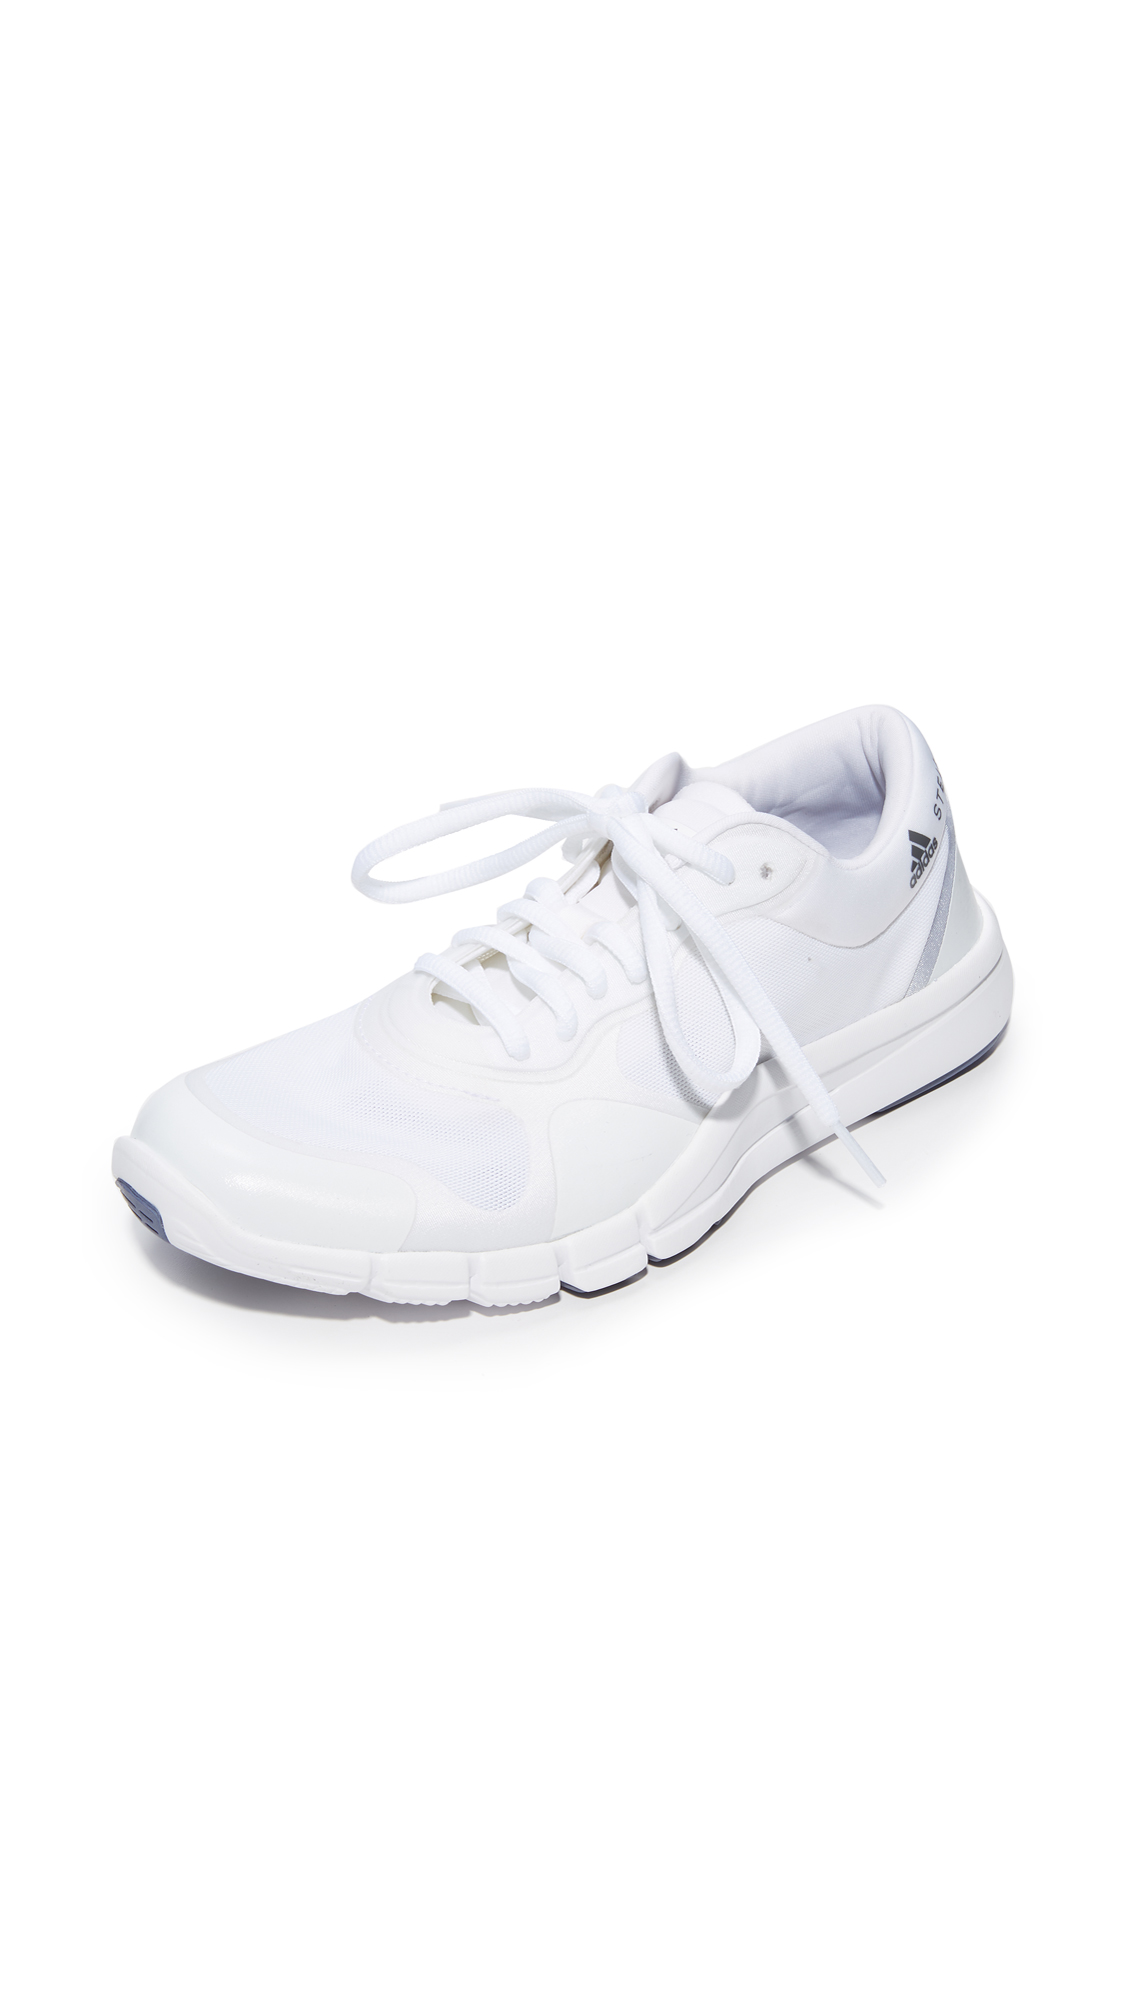 adidas by Stella McCartney Adipure Sneakers - Ftwr White/Ftwr White/Purple